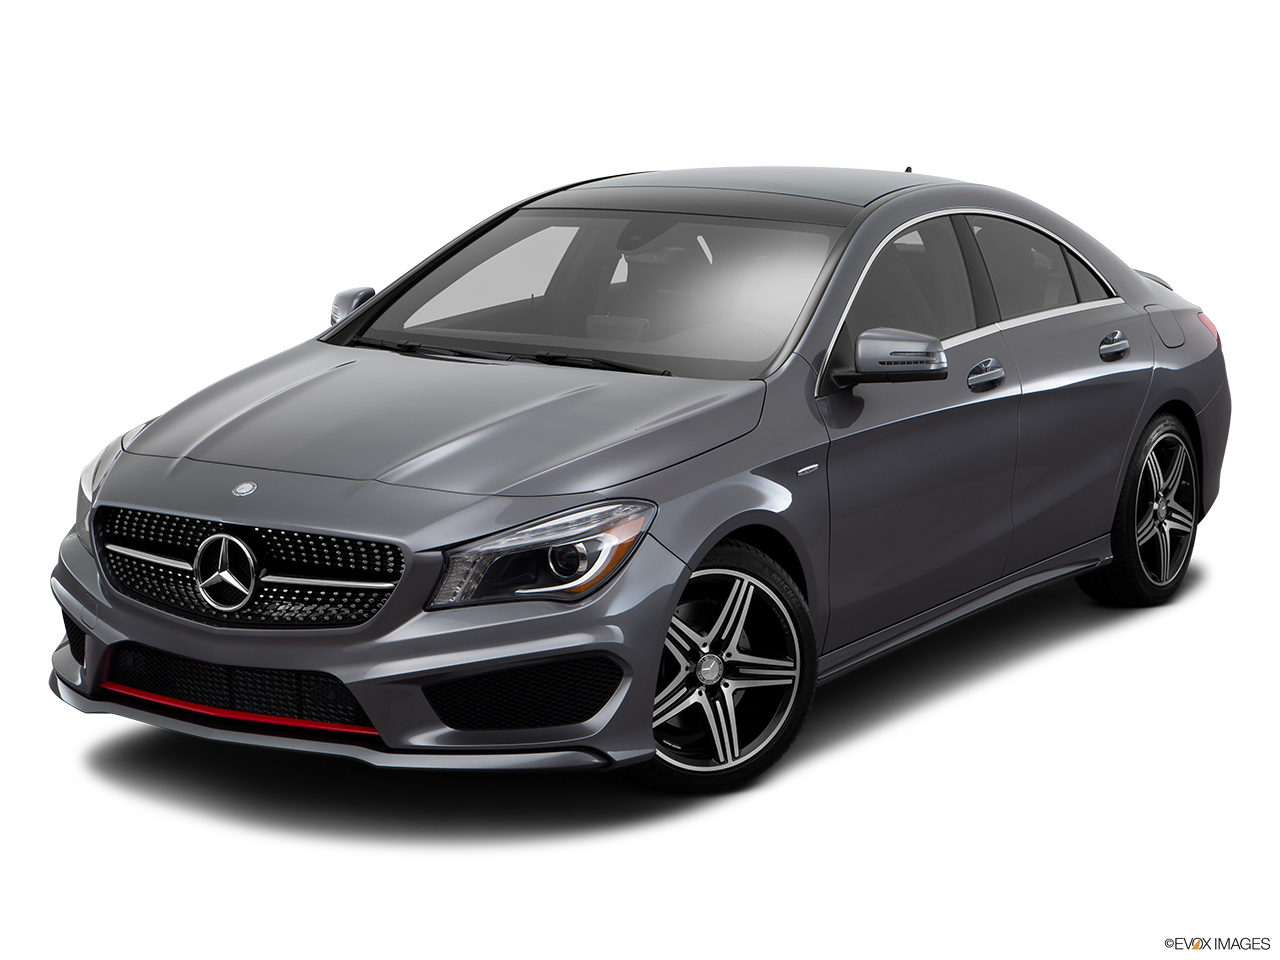 Mercedes benz cla class 2016 cla 250 in kuwait new car for 2015 mercedes benz cla 250 price